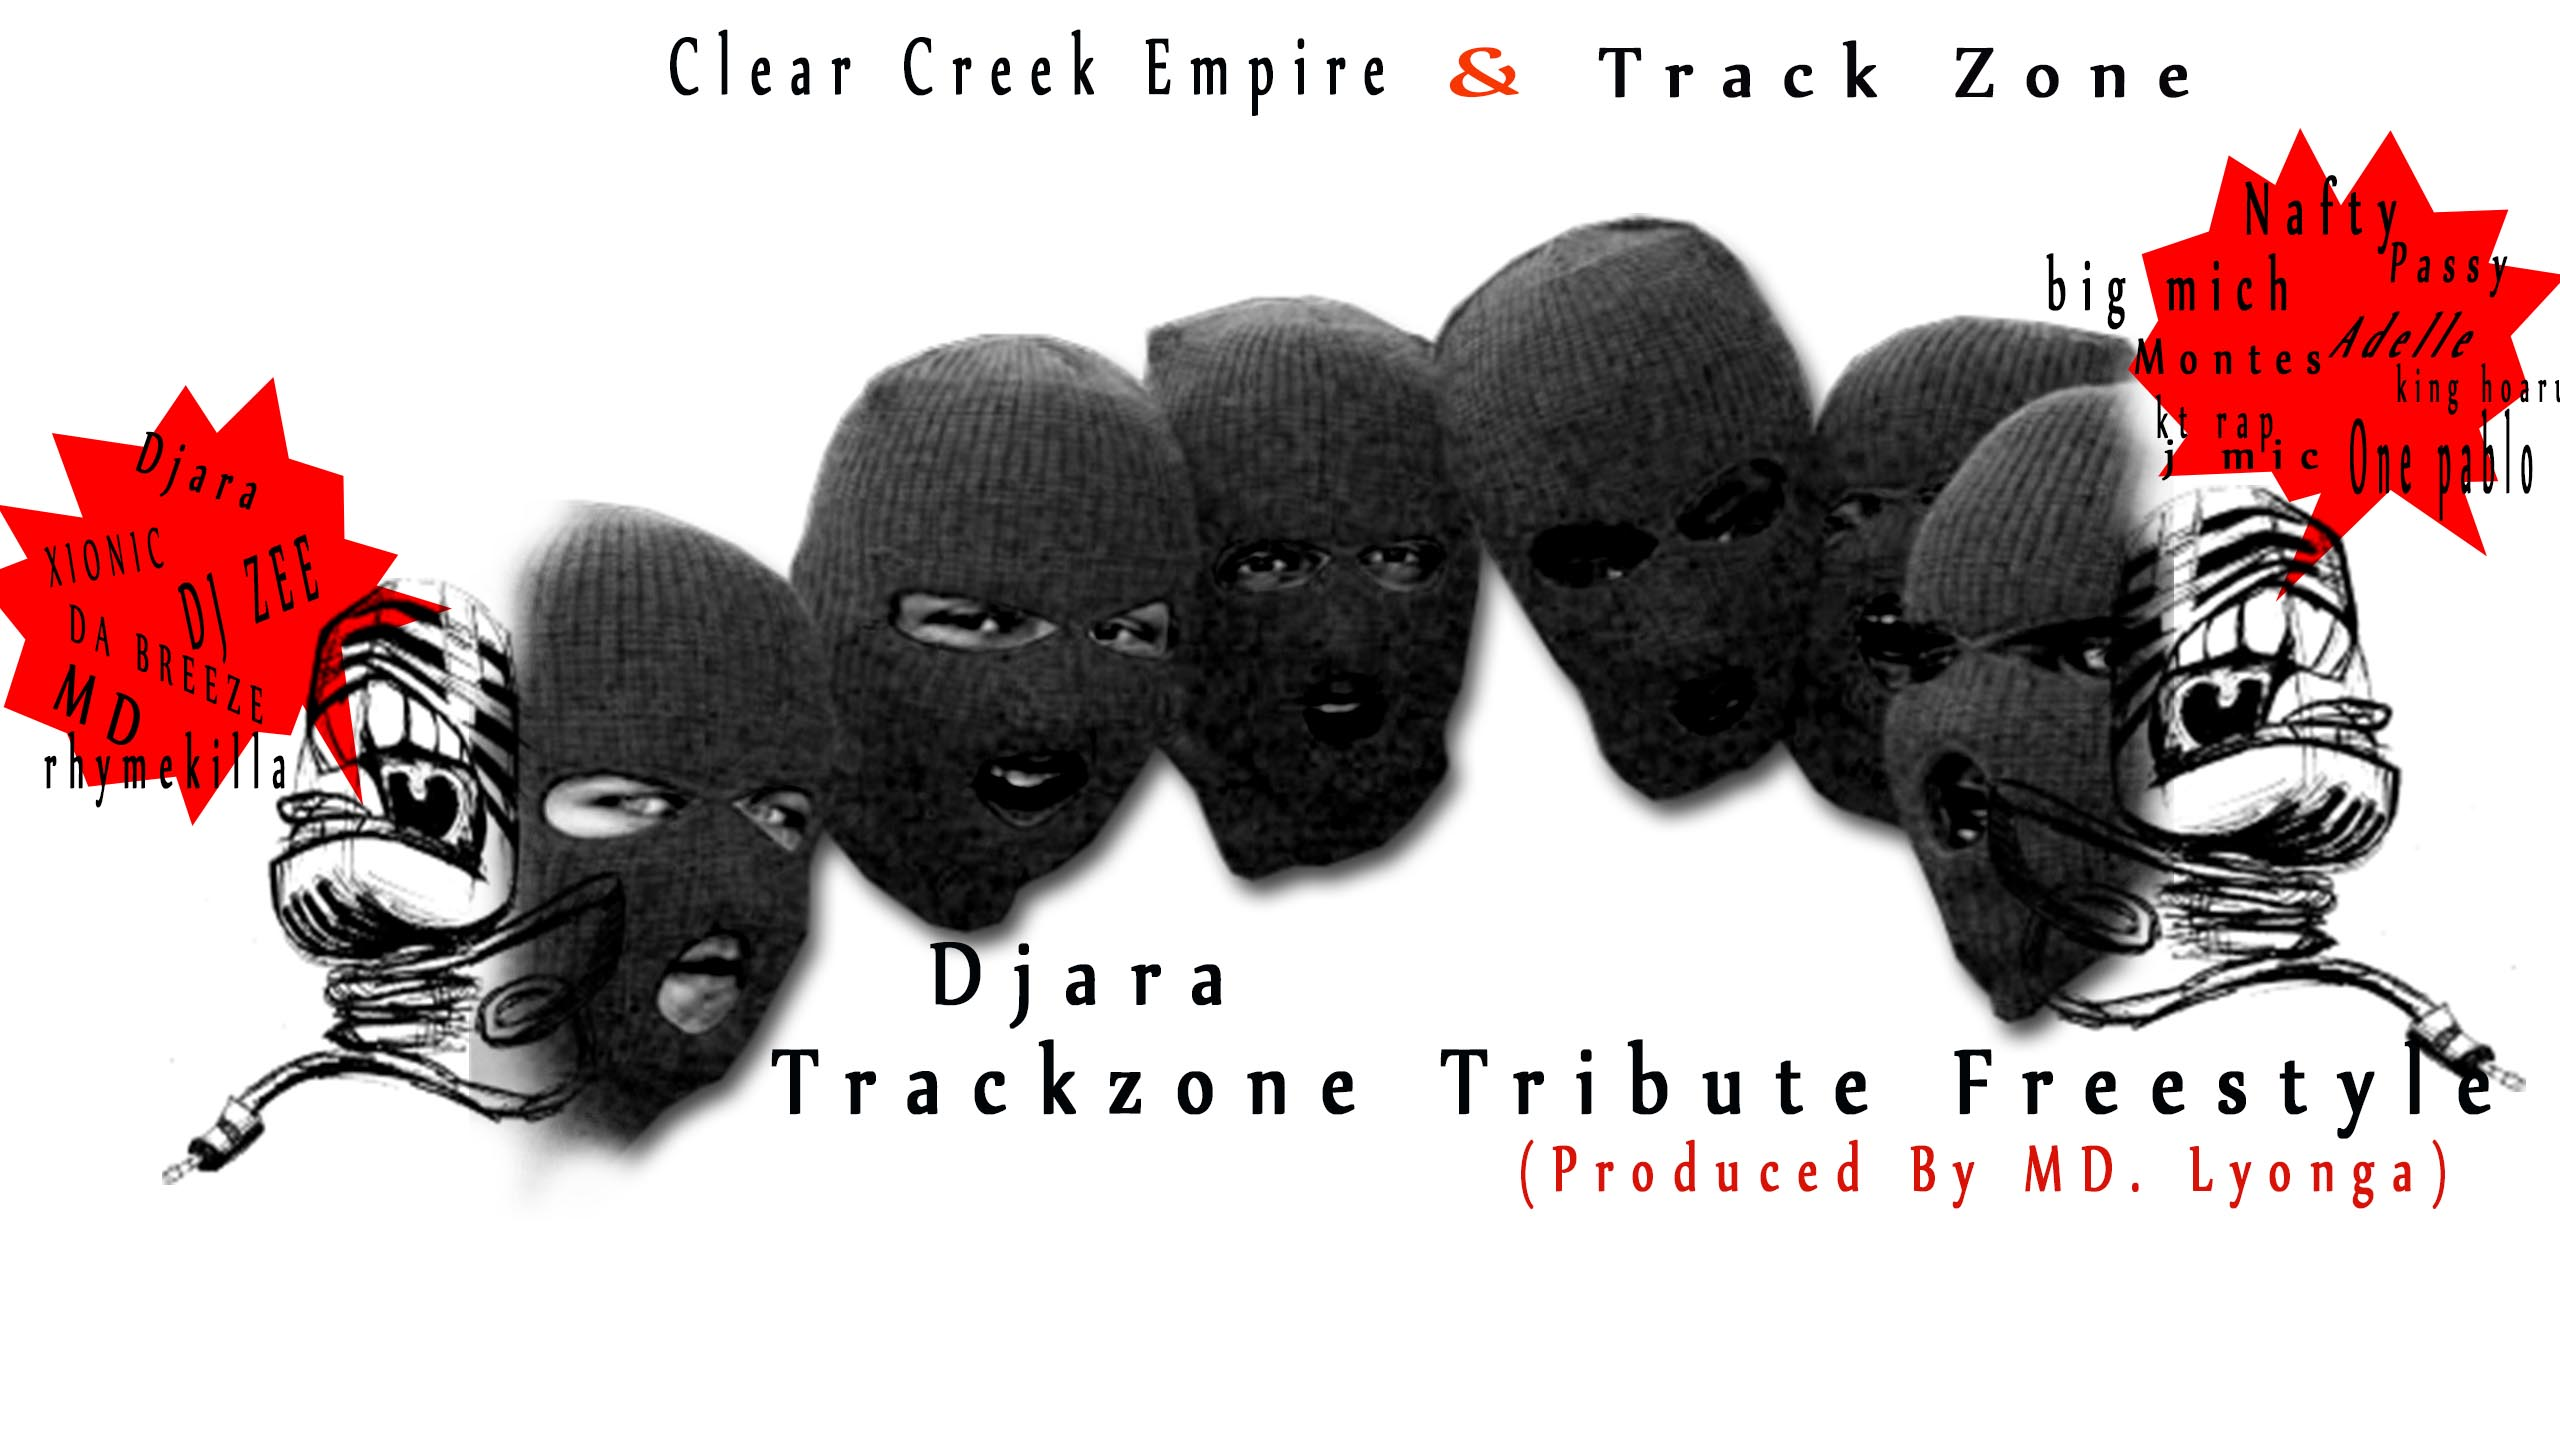 Djara - Trackzone Tribute Freestyle